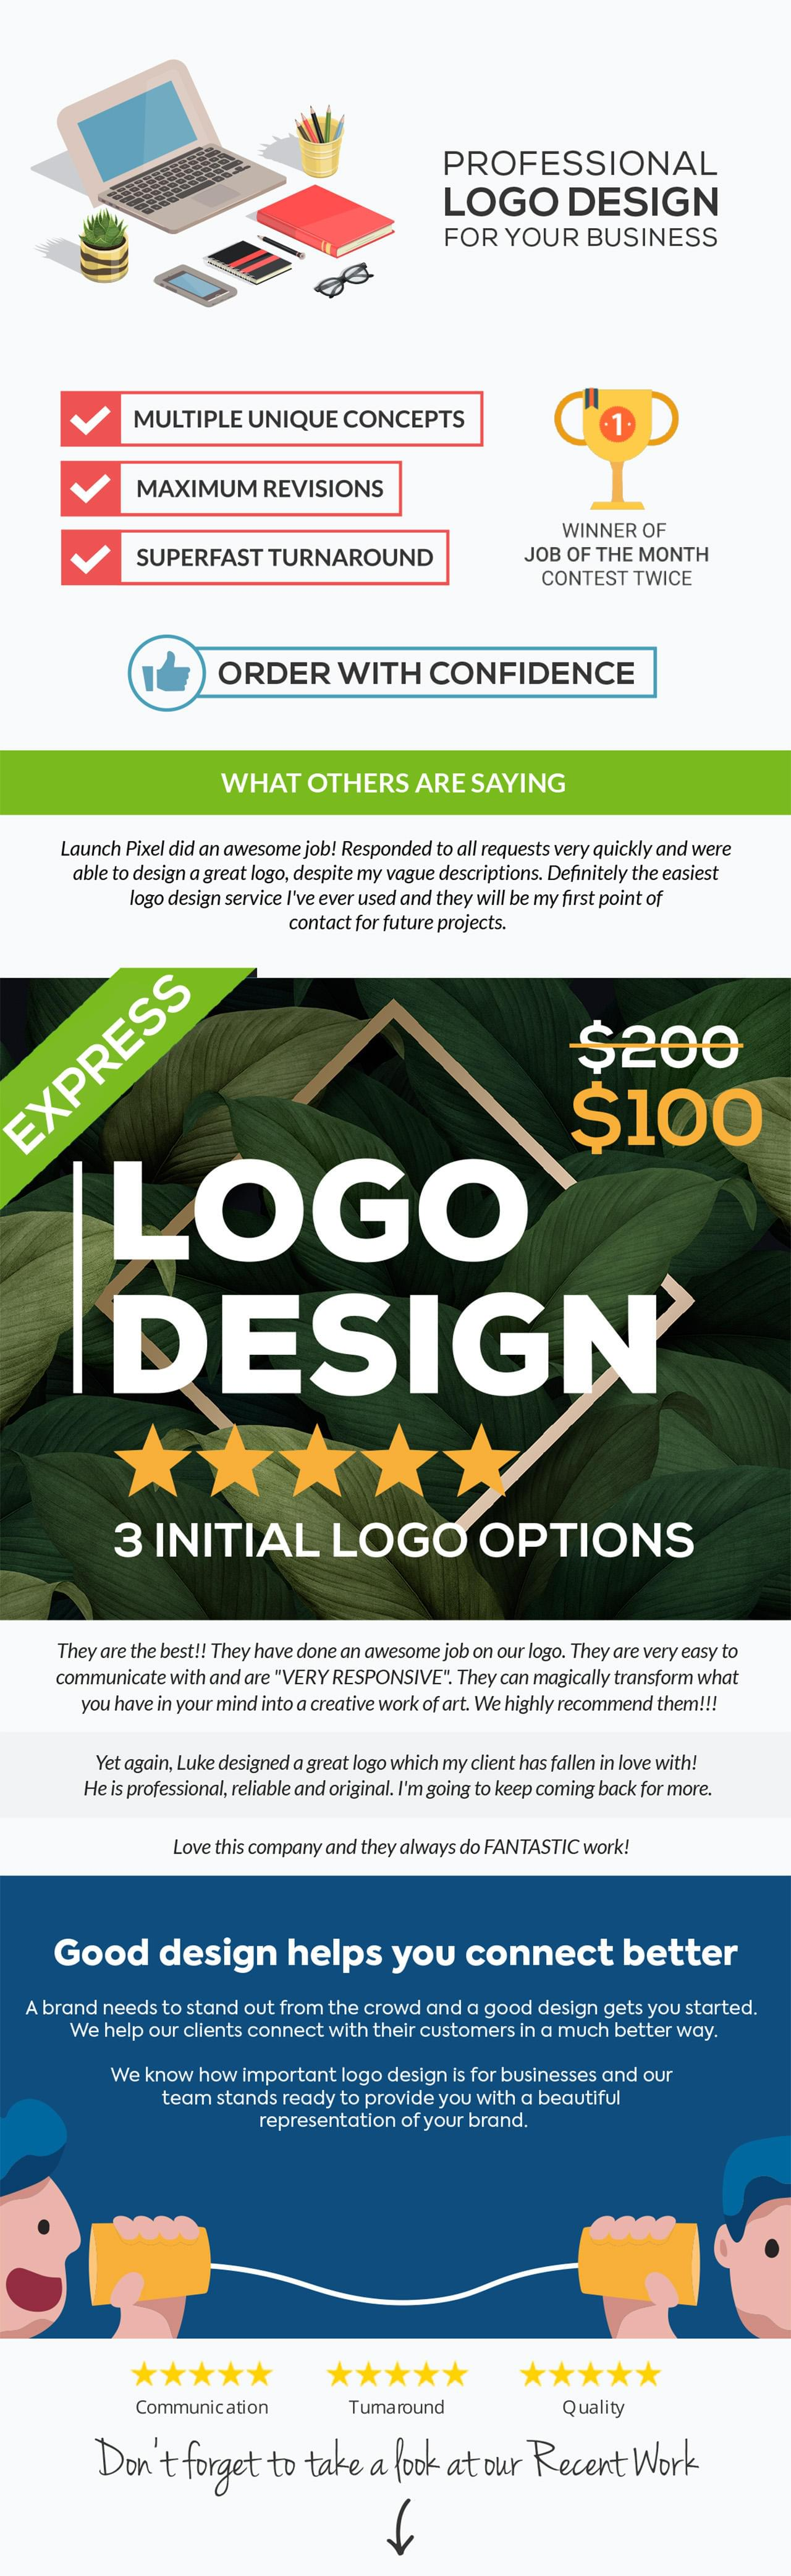 Logo Design by launchpixel - 116201